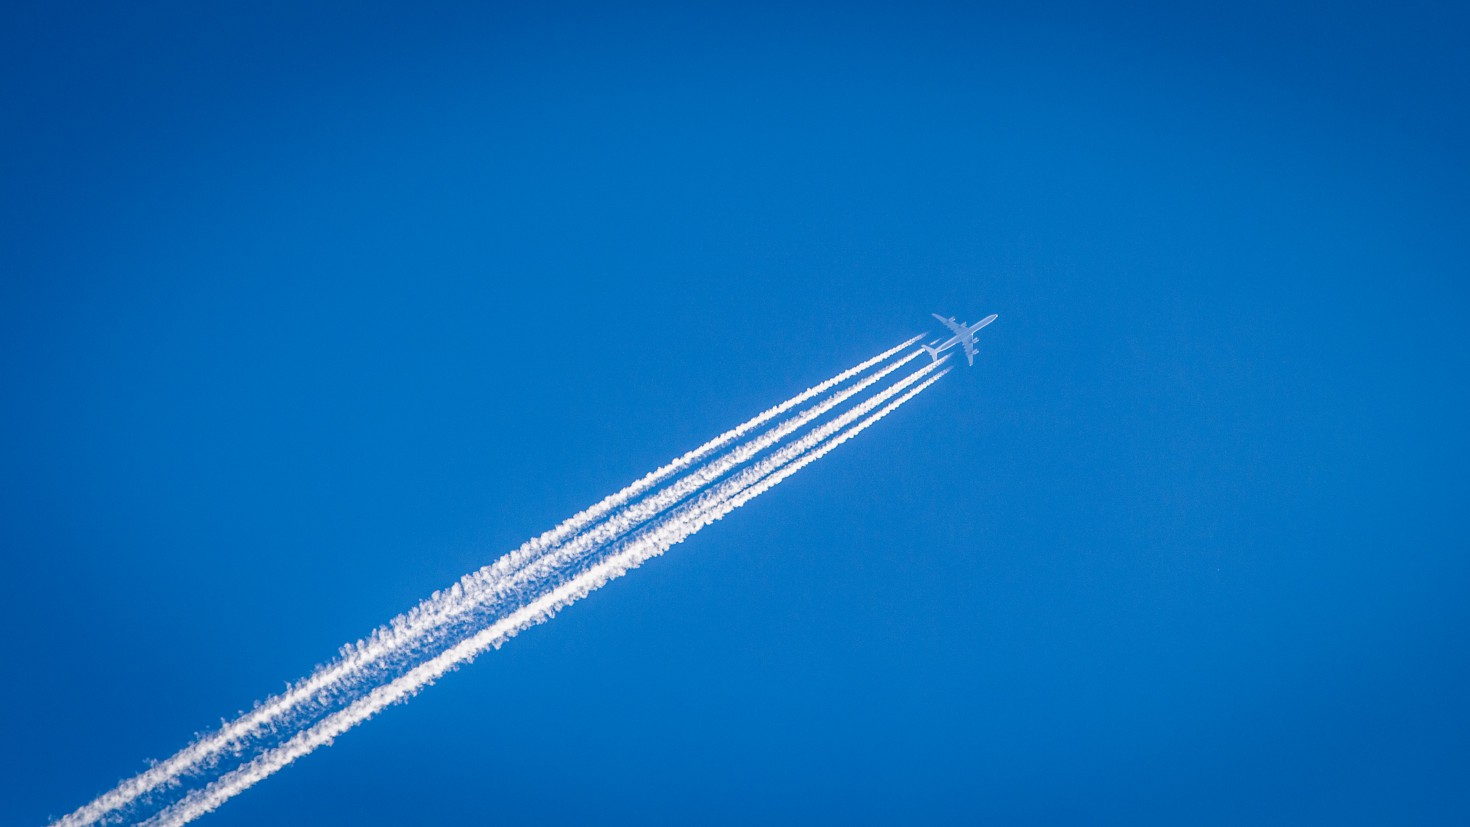 The climate is affected by aviation through several mechanisms in addition to CO2 emissions. The formation of contrails is estimated to have caused a larger contribution to the sector's climate warming than that from CO2. Photo: WIlliam Hook, Unsplash